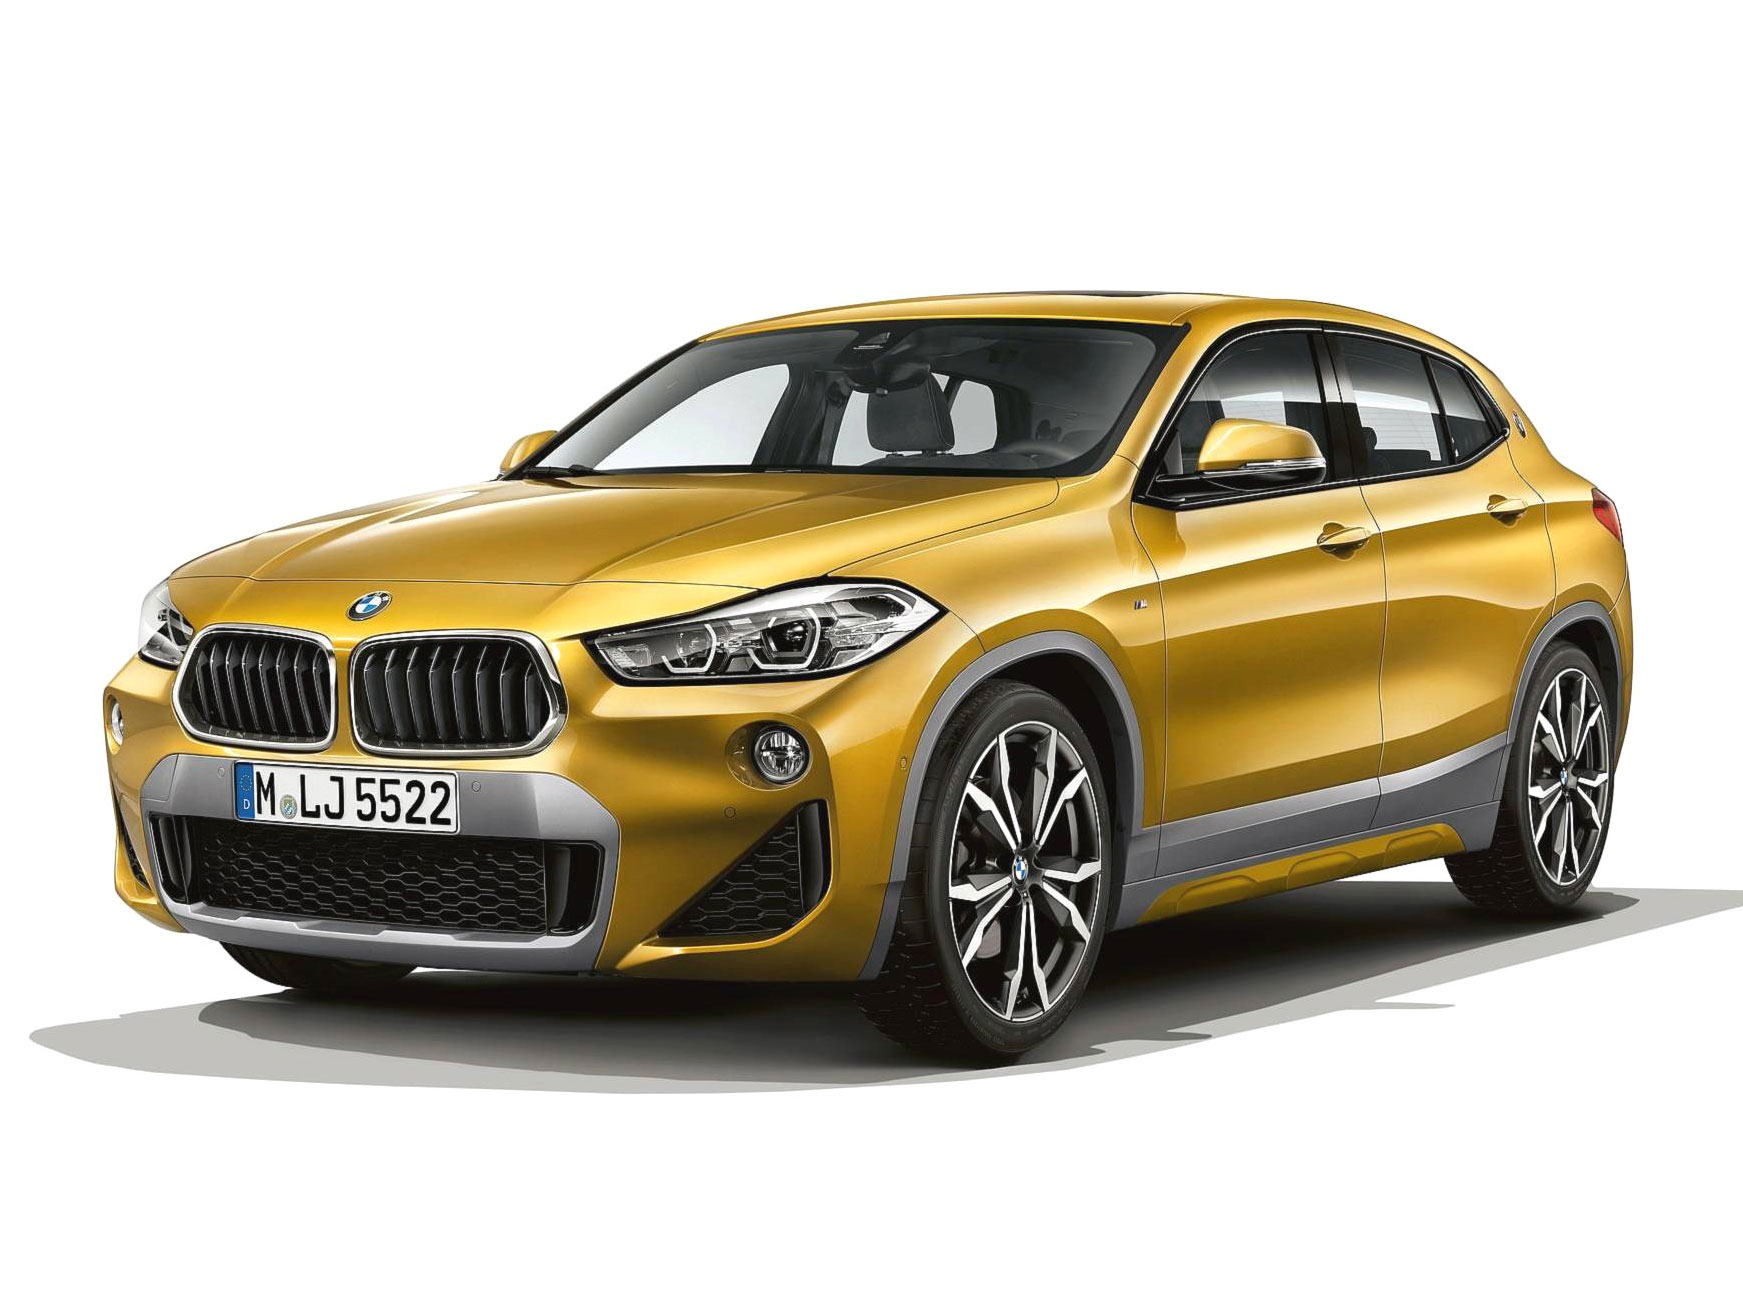 mandataire occasion bmw x2 f39 sdrive 18i 140 ch dkg7 lounge. Black Bedroom Furniture Sets. Home Design Ideas